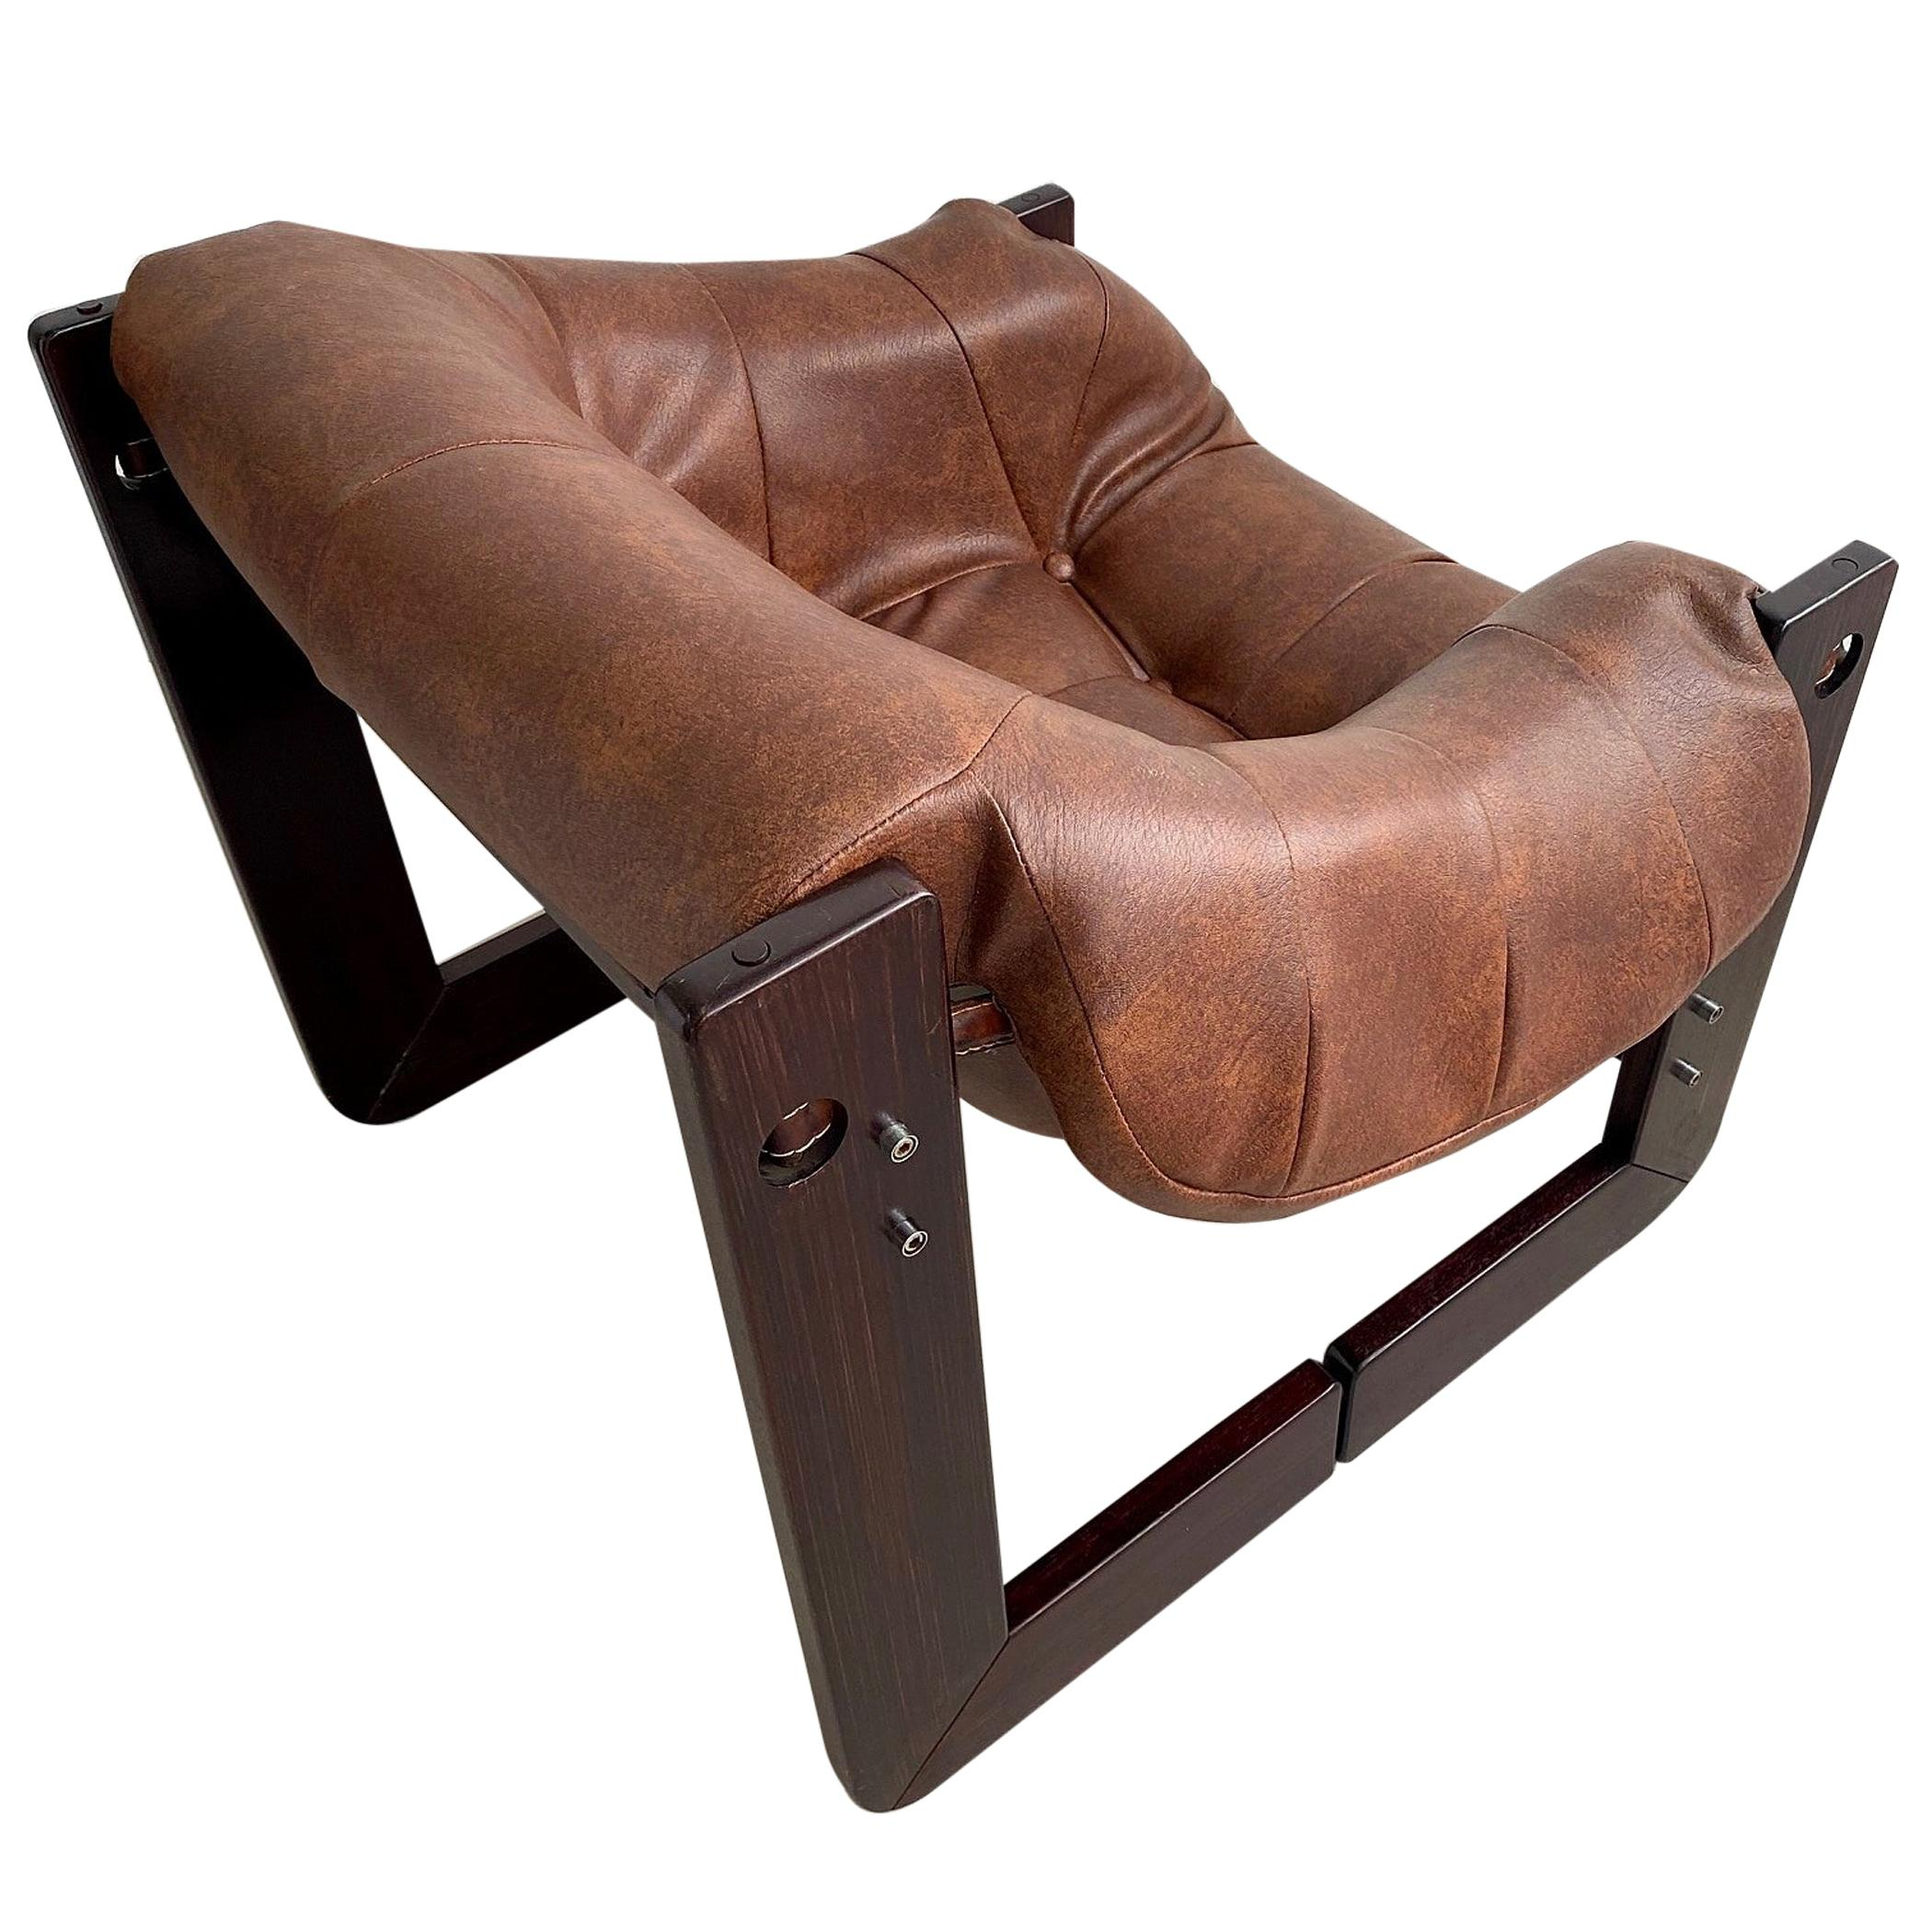 Mid-Century Modern Percival Lafer Lounge Chair